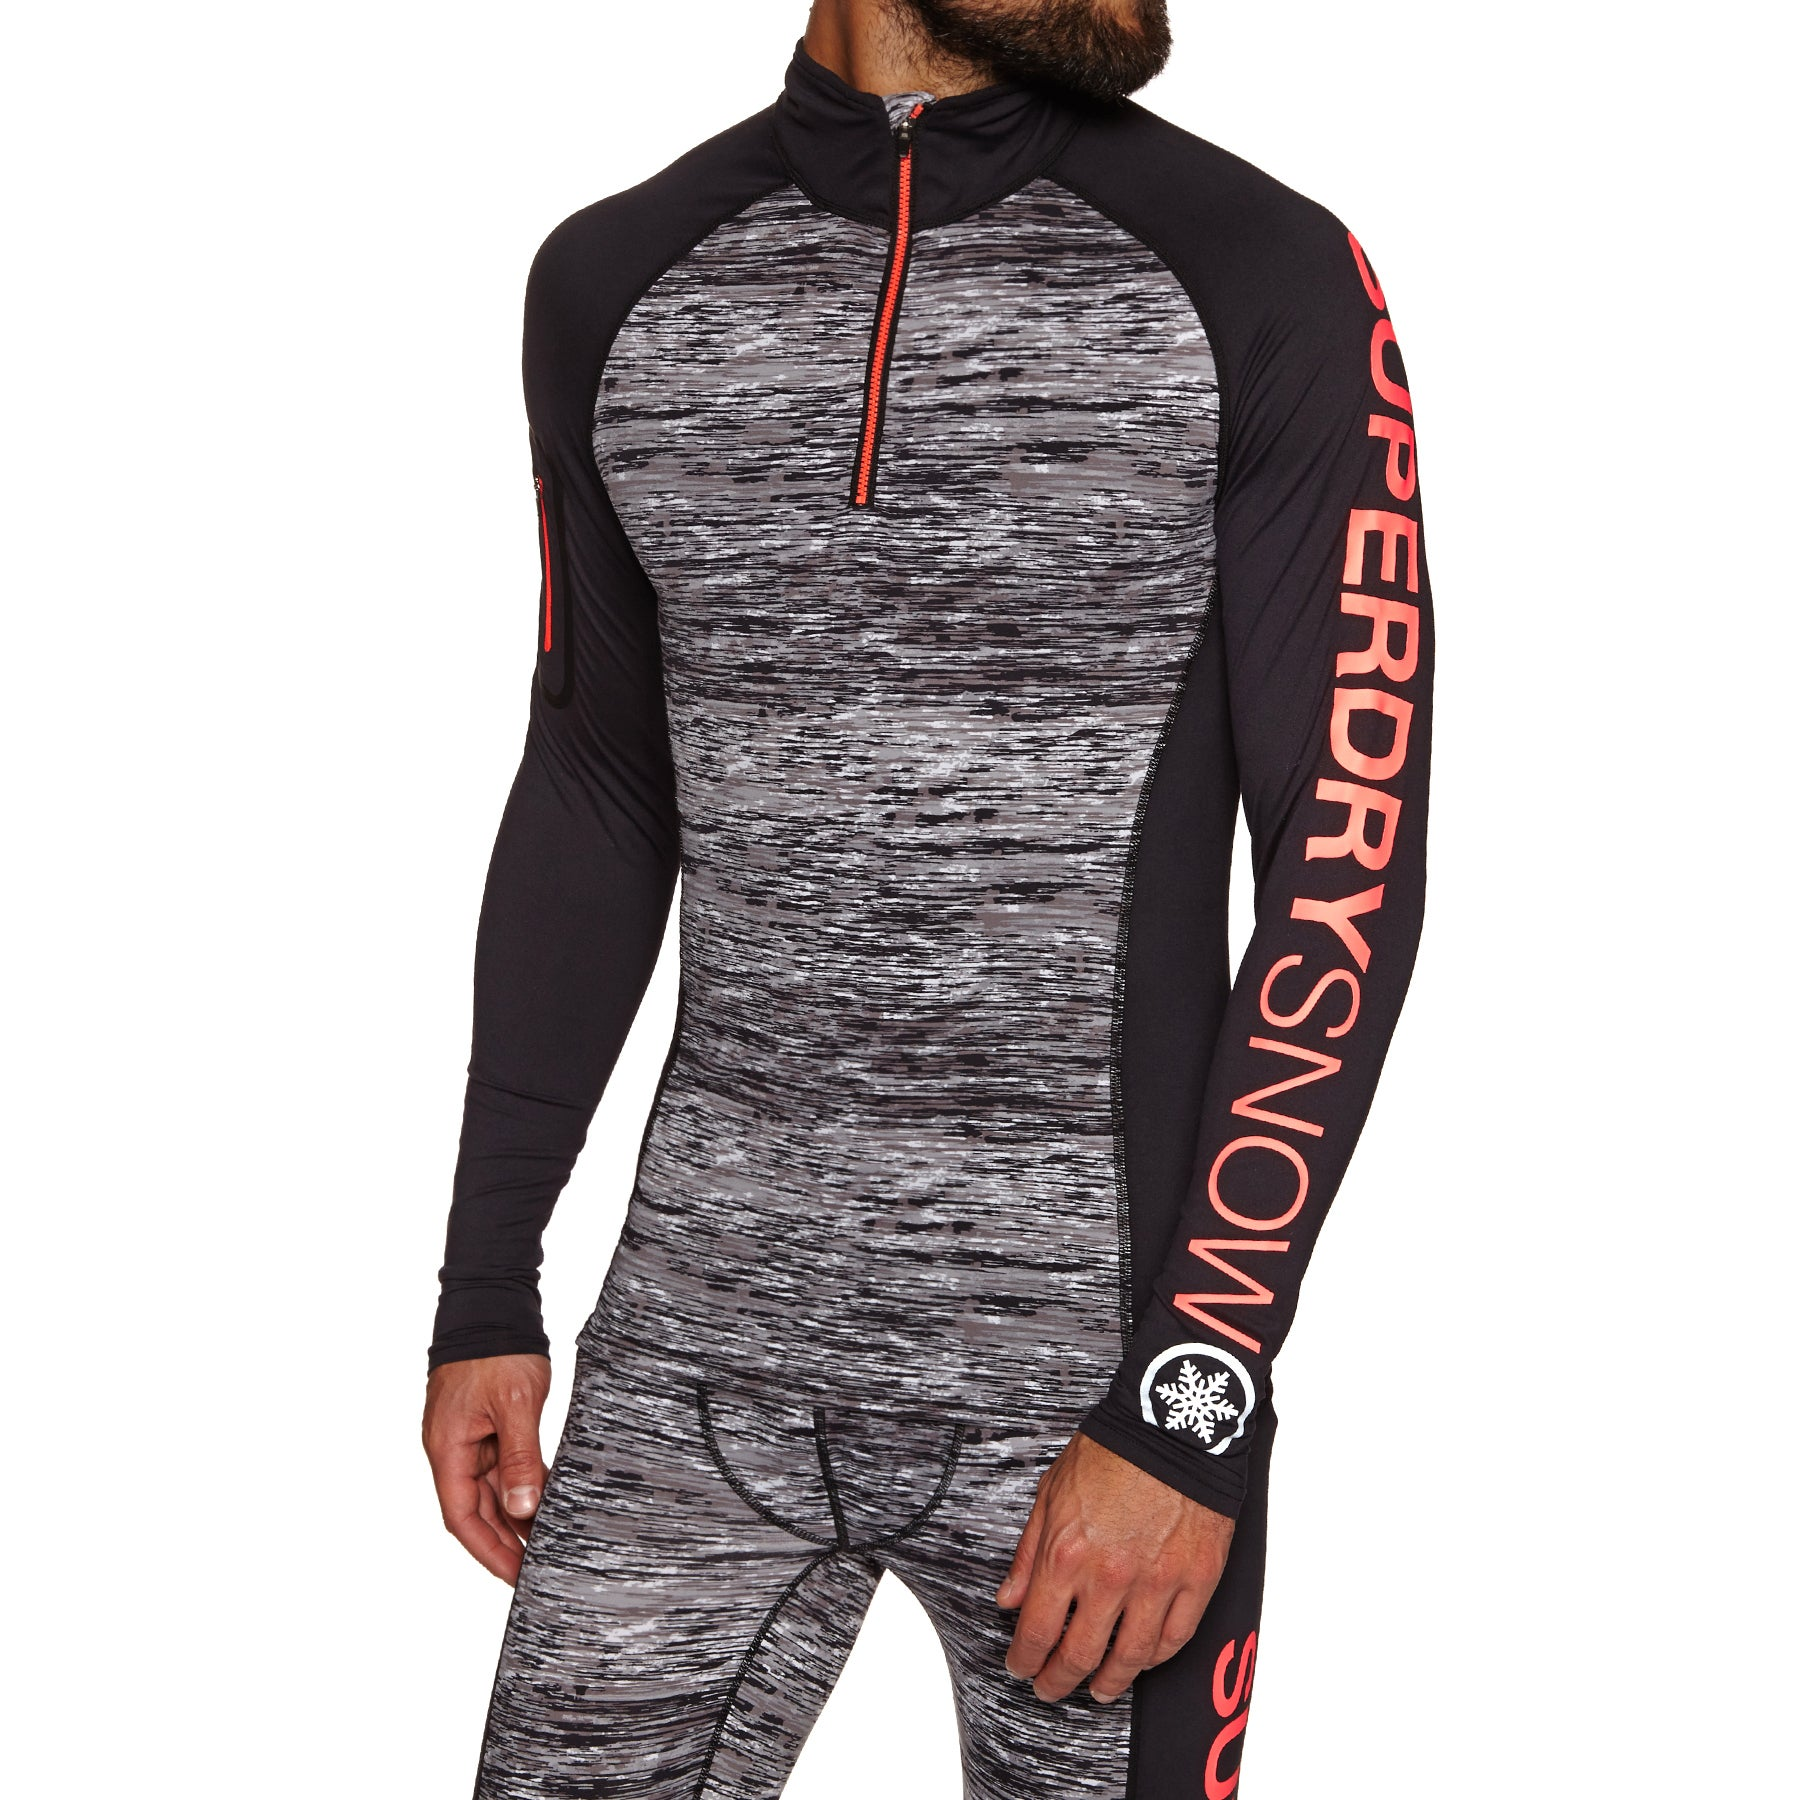 Superdry Carbon Baselayer 1/2 Zip Top Base Layer Top - Carbon Space Dye